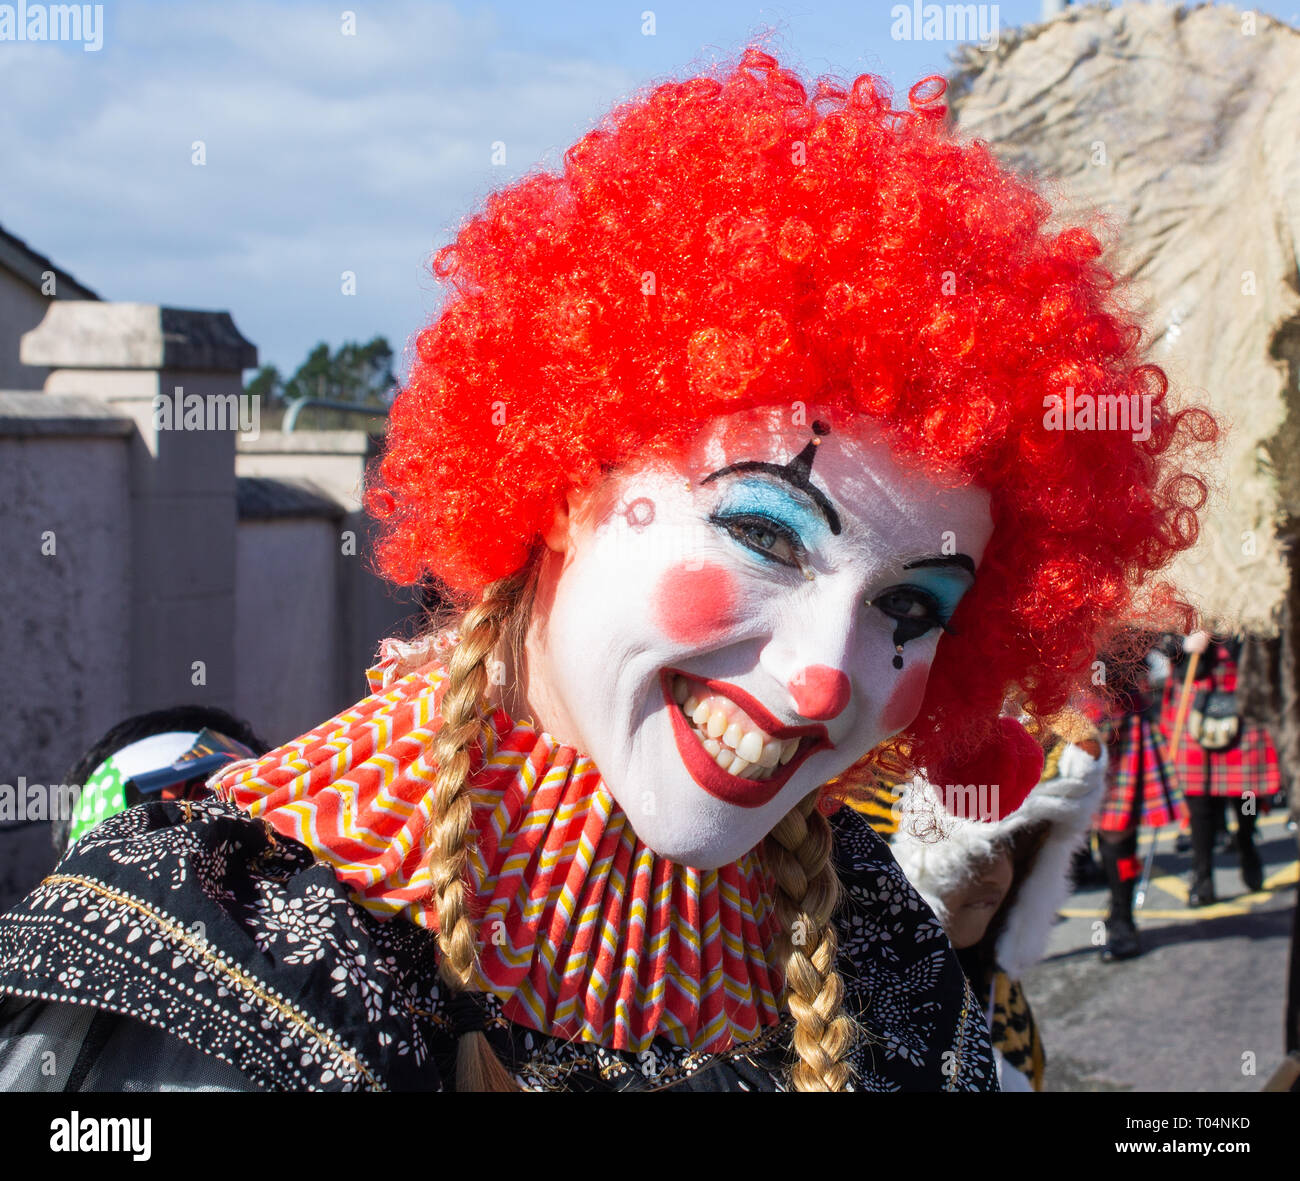 smiling-circus-clown-close-up-T04NKD.jpg